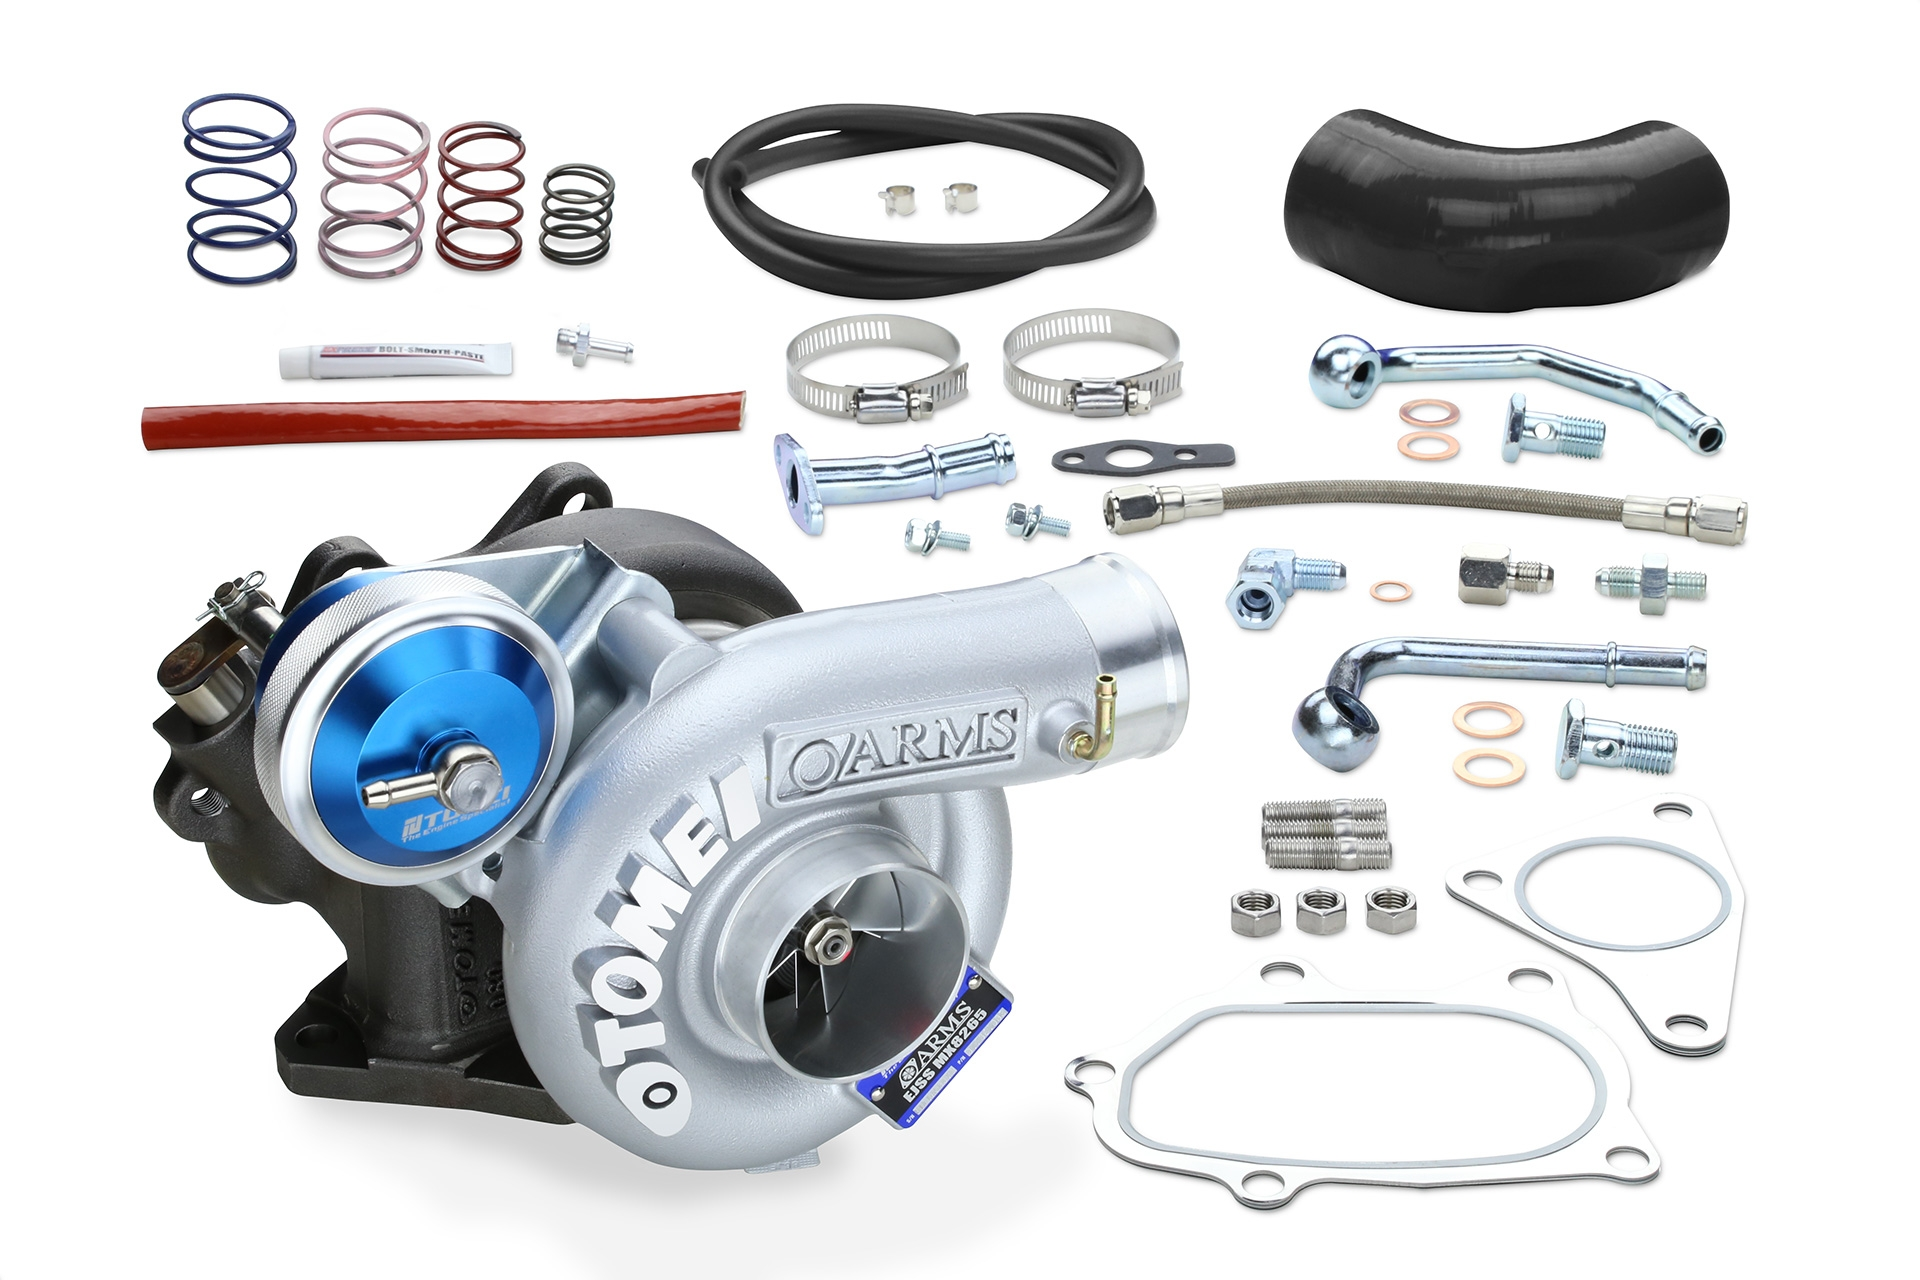 Tomei Turbocharger Kit Arms MX7760 EJ Single Scroll